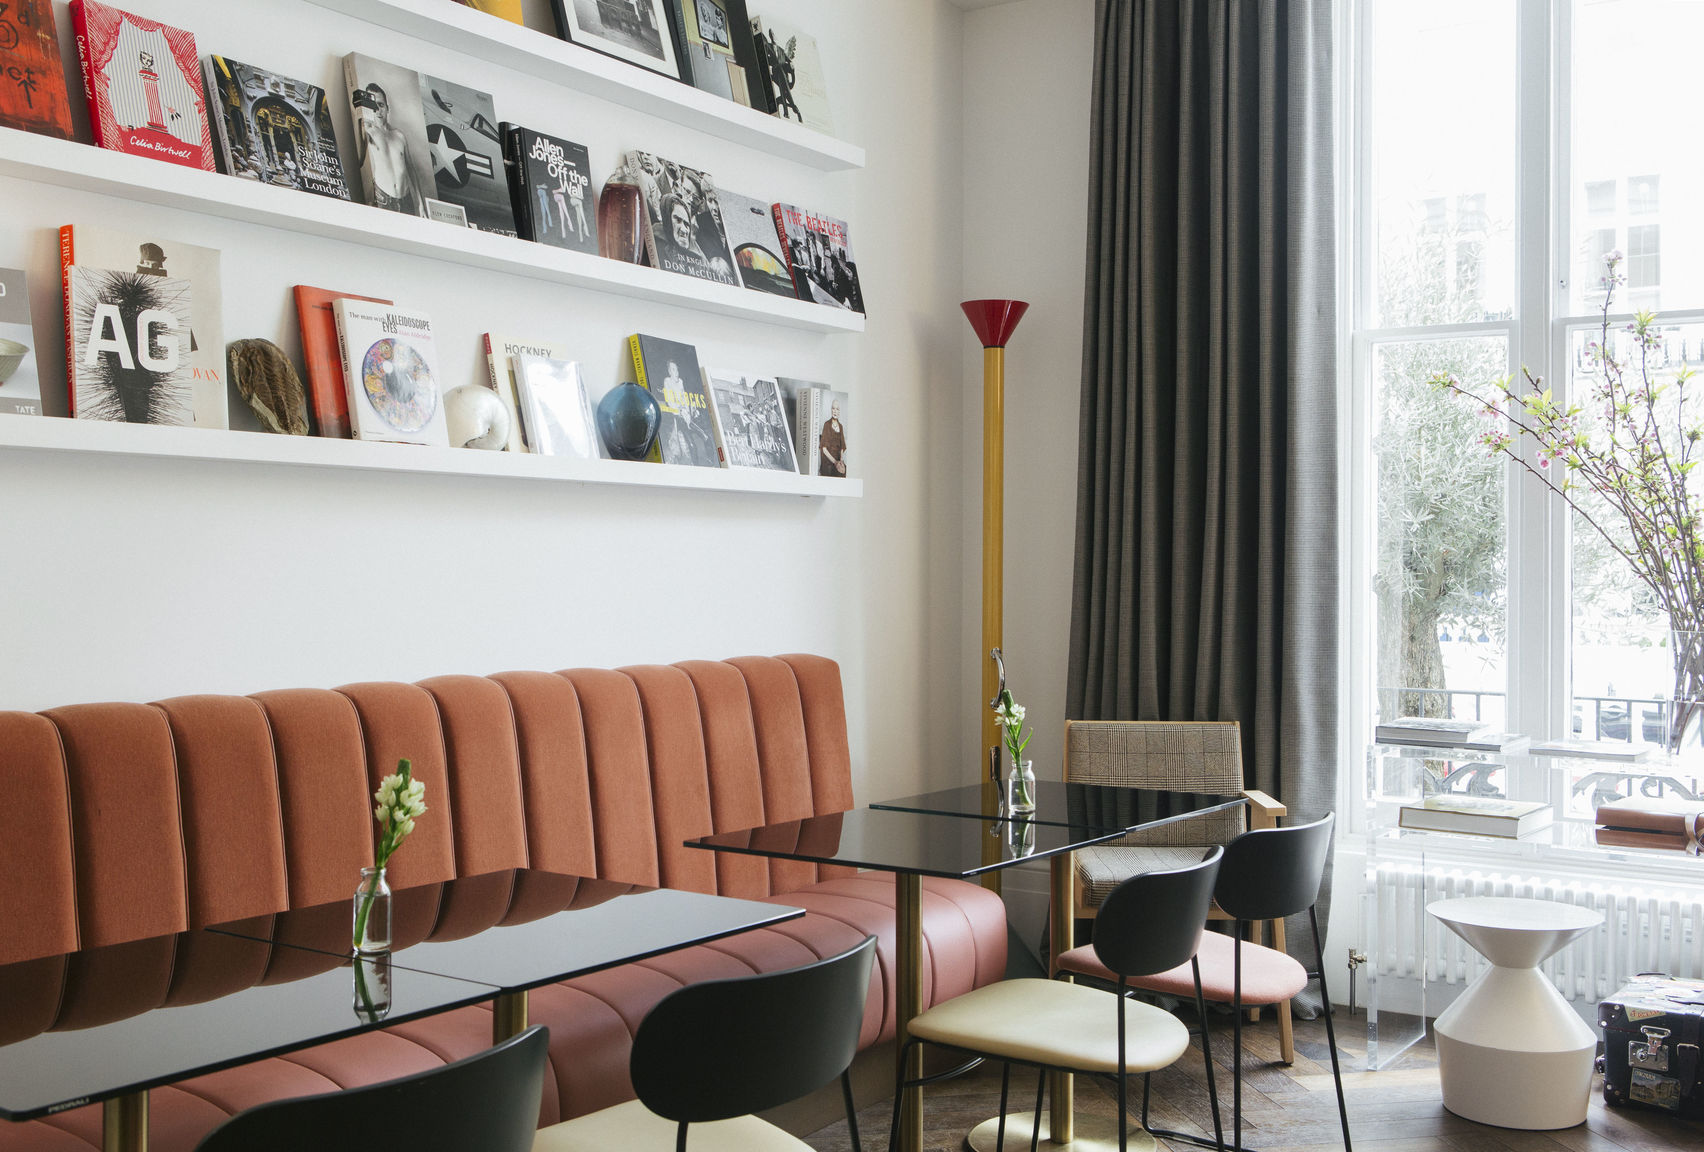 A meeting room with a pink sofa and magazines on shelves. A great option for hotels with meeting rooms hire.